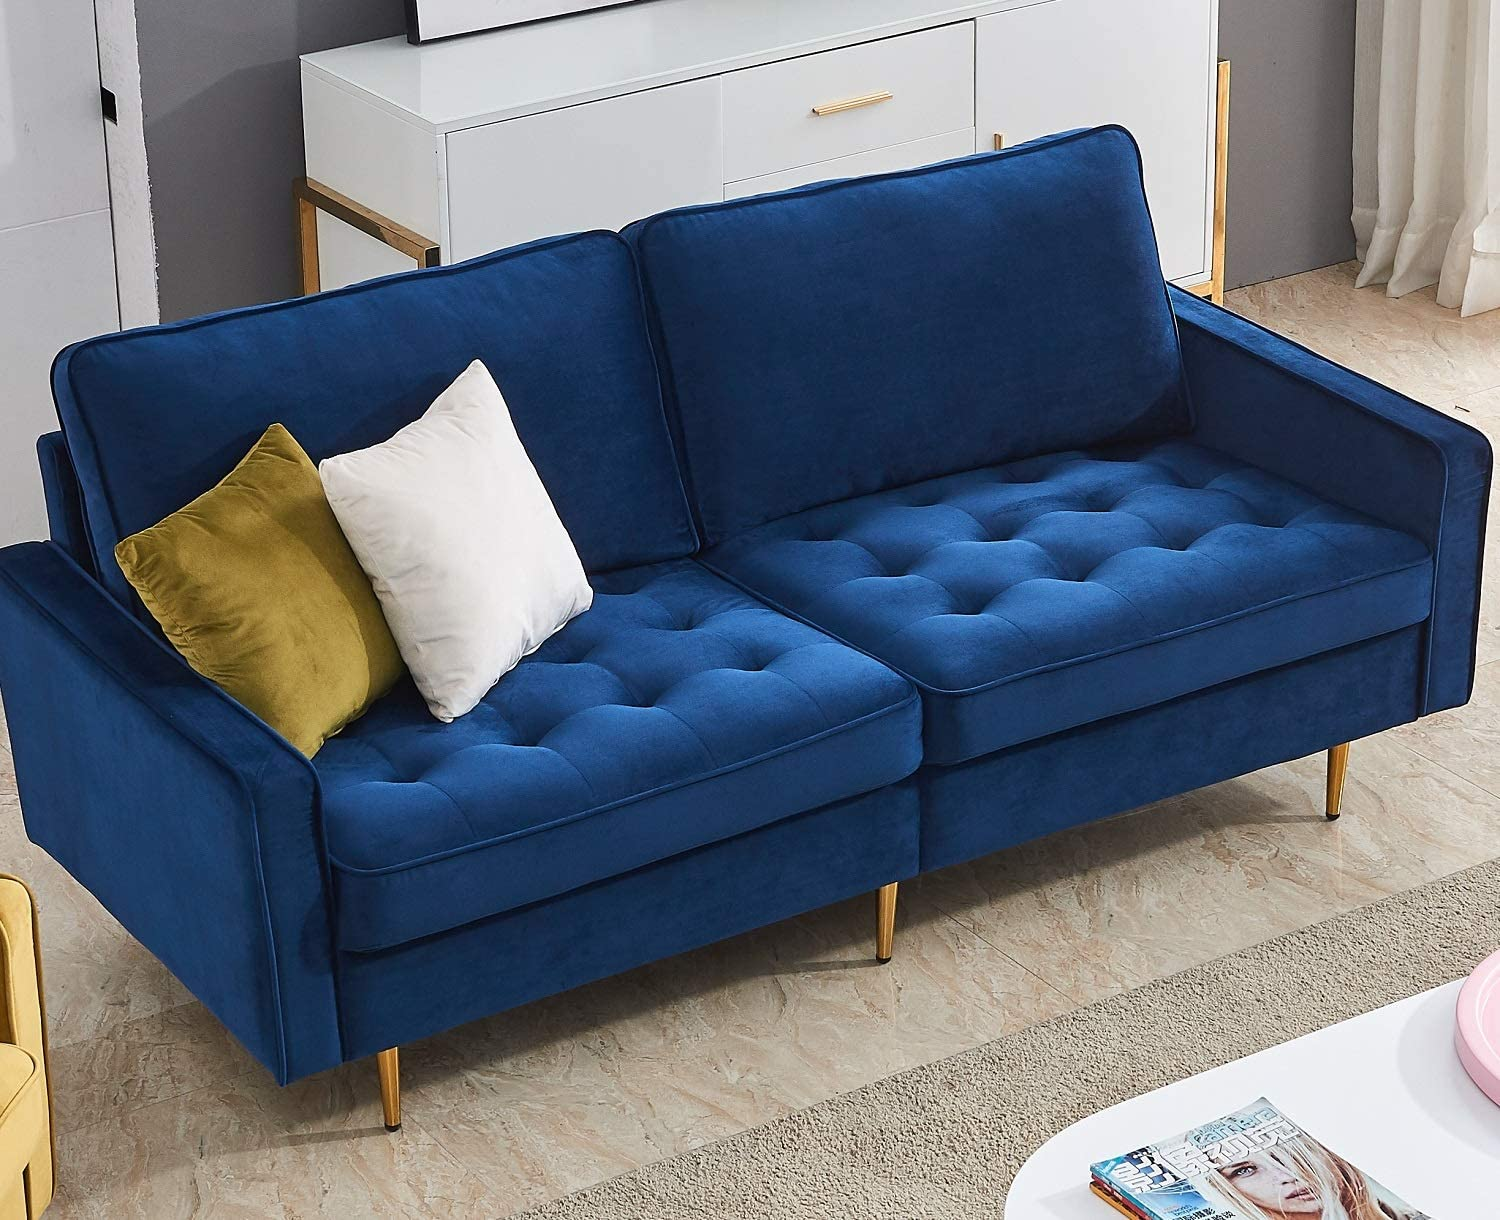 Danxee Velvet Fabric Sofa Couch 71 Wide Mid Century Modern Tufted Fabric Sofa Living Room Sofa 700lb Heavy Duty With 2 Pillows Blue Kitchen Dining